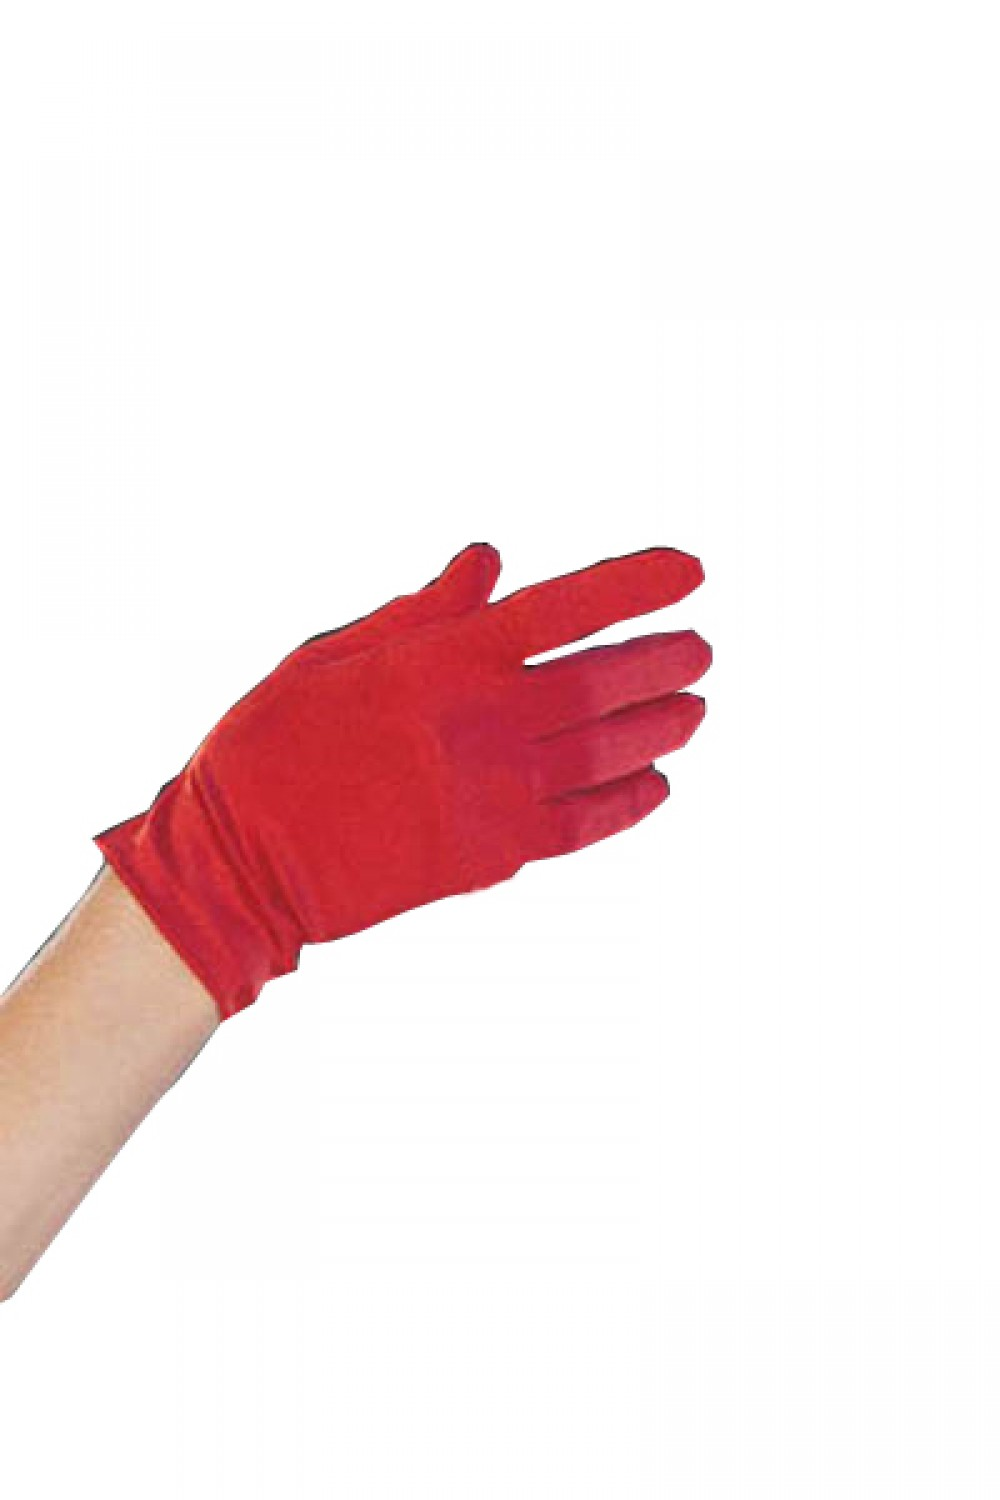 Red Gloves Solid Color For Banquet